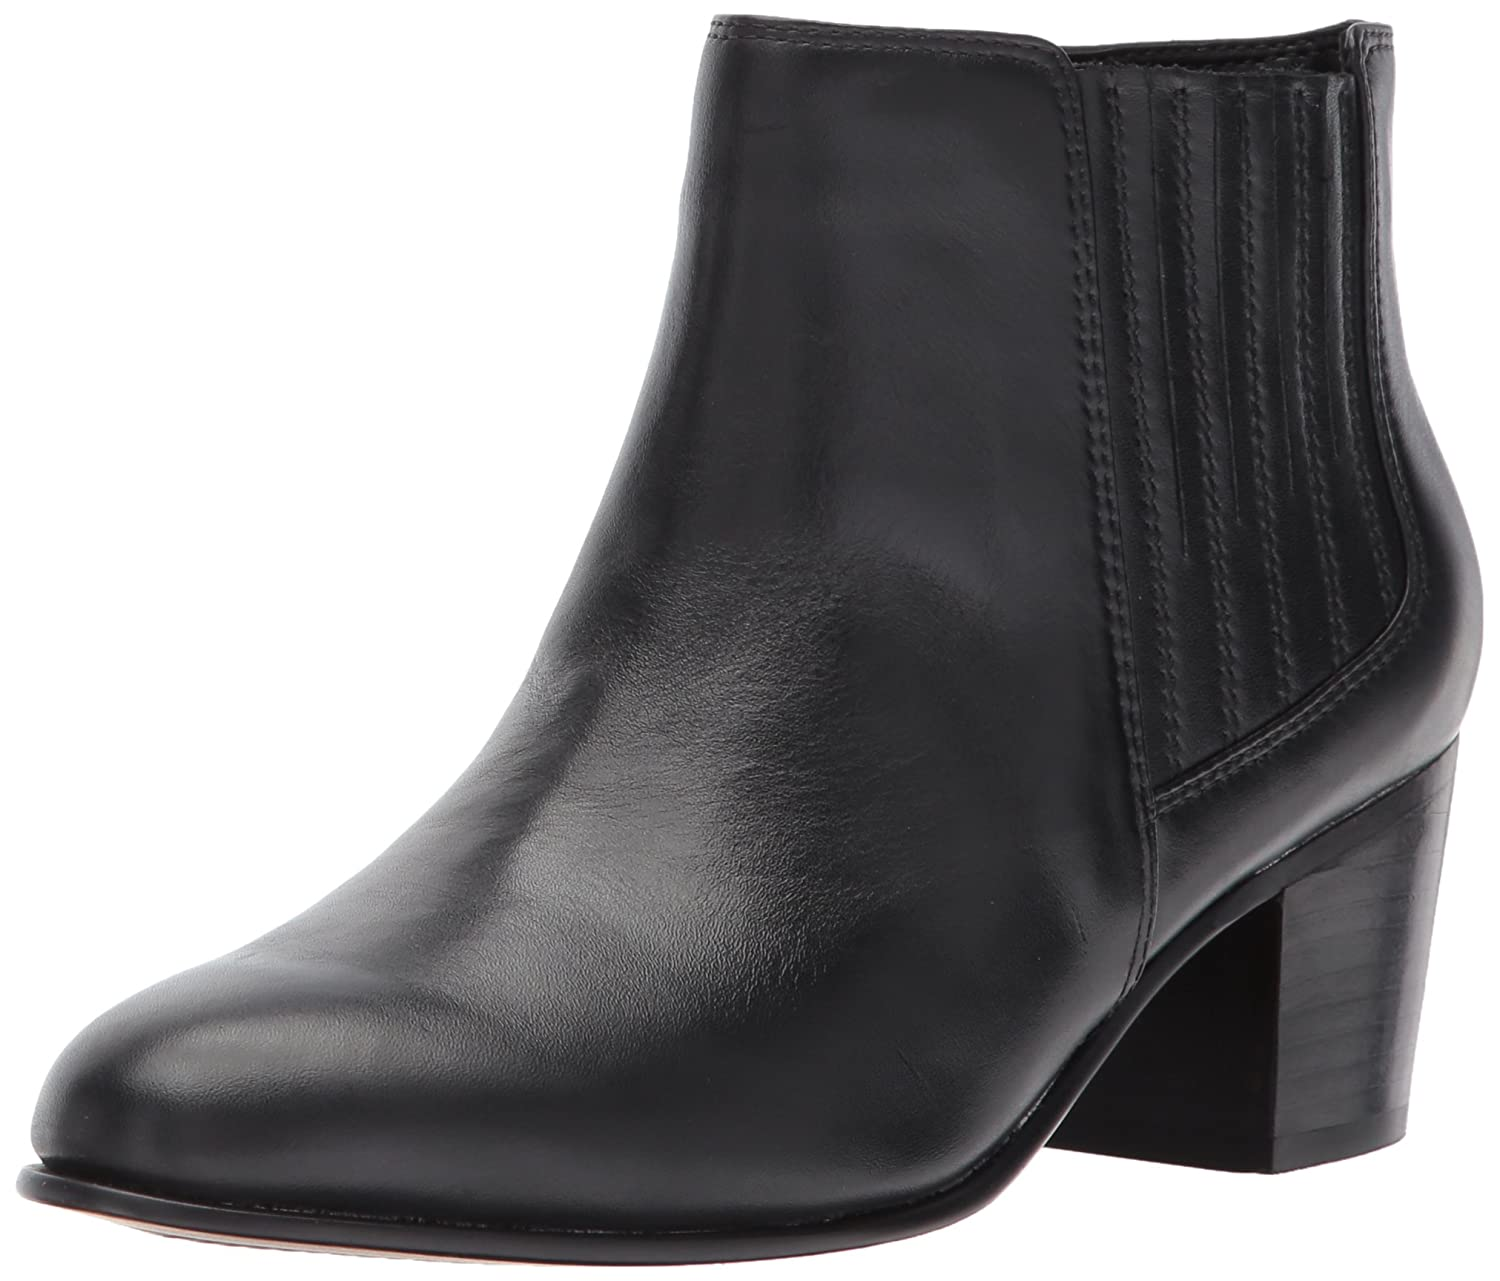 CLARKS Women's Maypearl Tulsa Ankle Bootie B01MRZPVIC 5.5 B(M) US|Black Leather